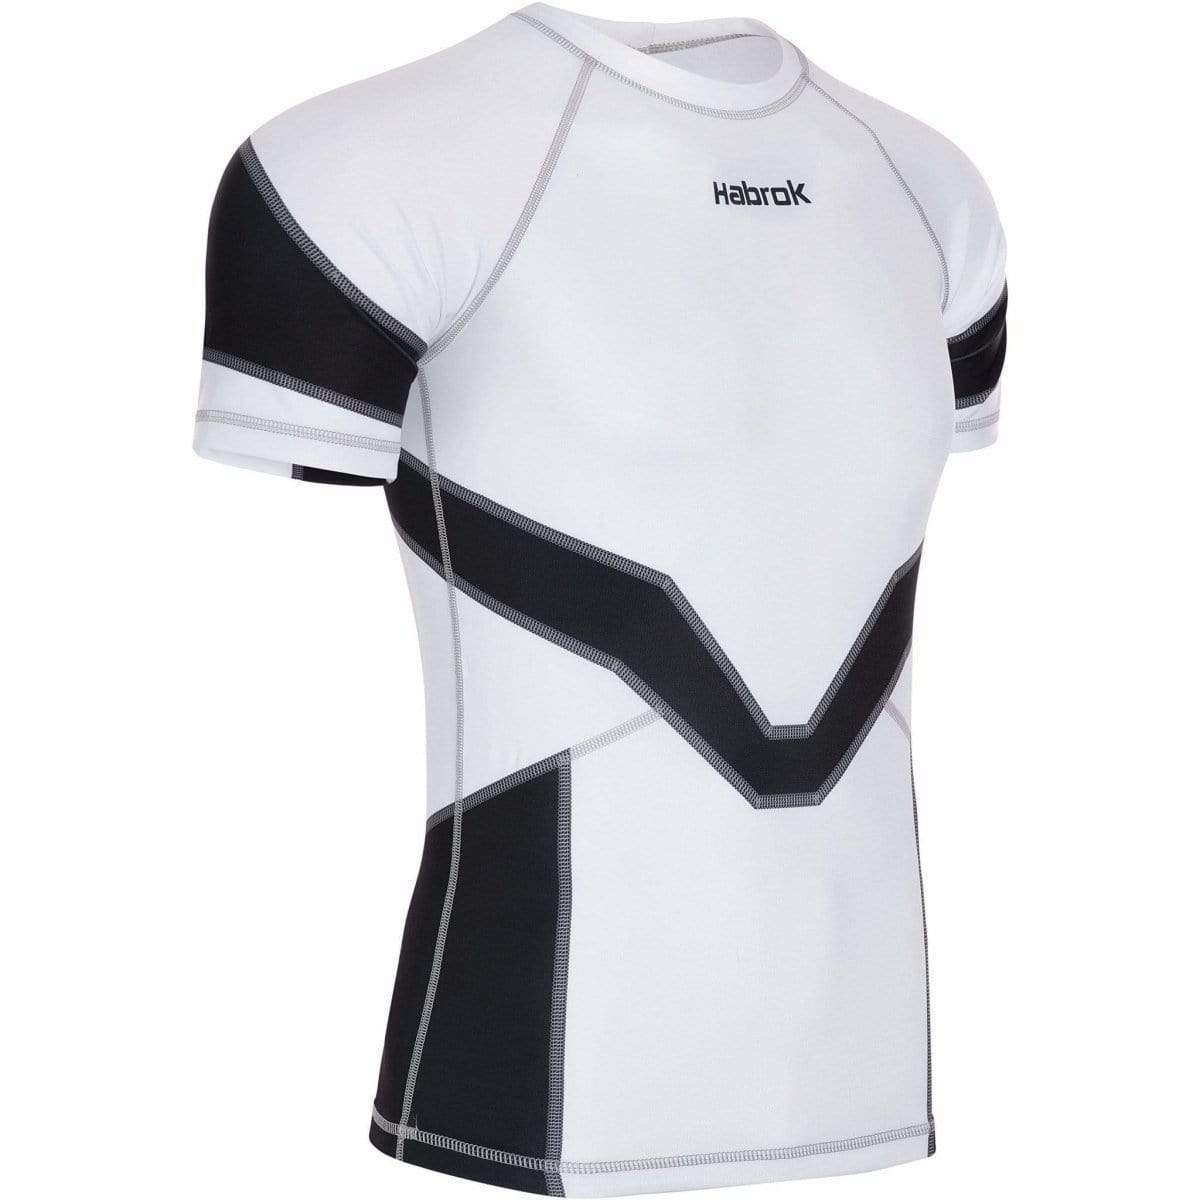 Habrok Rash Guard XS / BLACK Transform 2.0 | Ranked Rash Guard Women | Half Sleeve